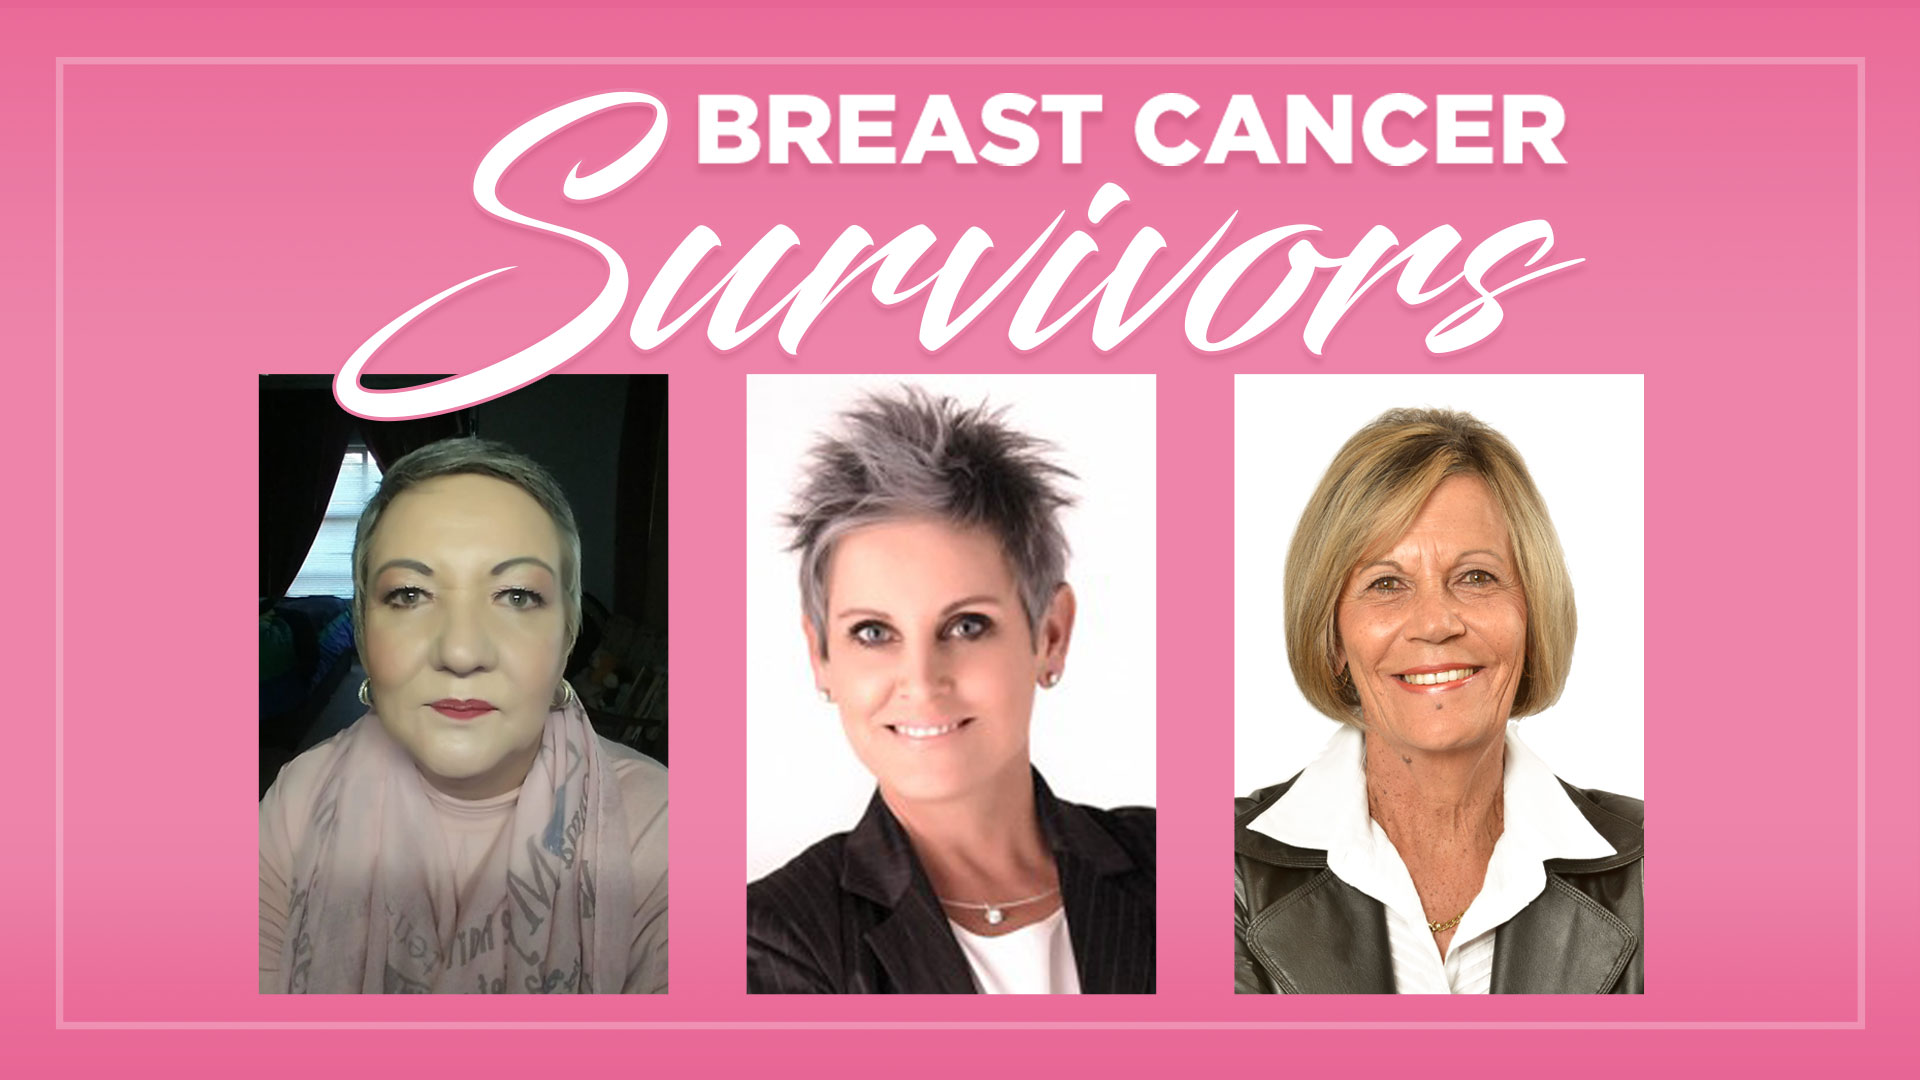 BREAST CANCER SURVIVOR STORIES